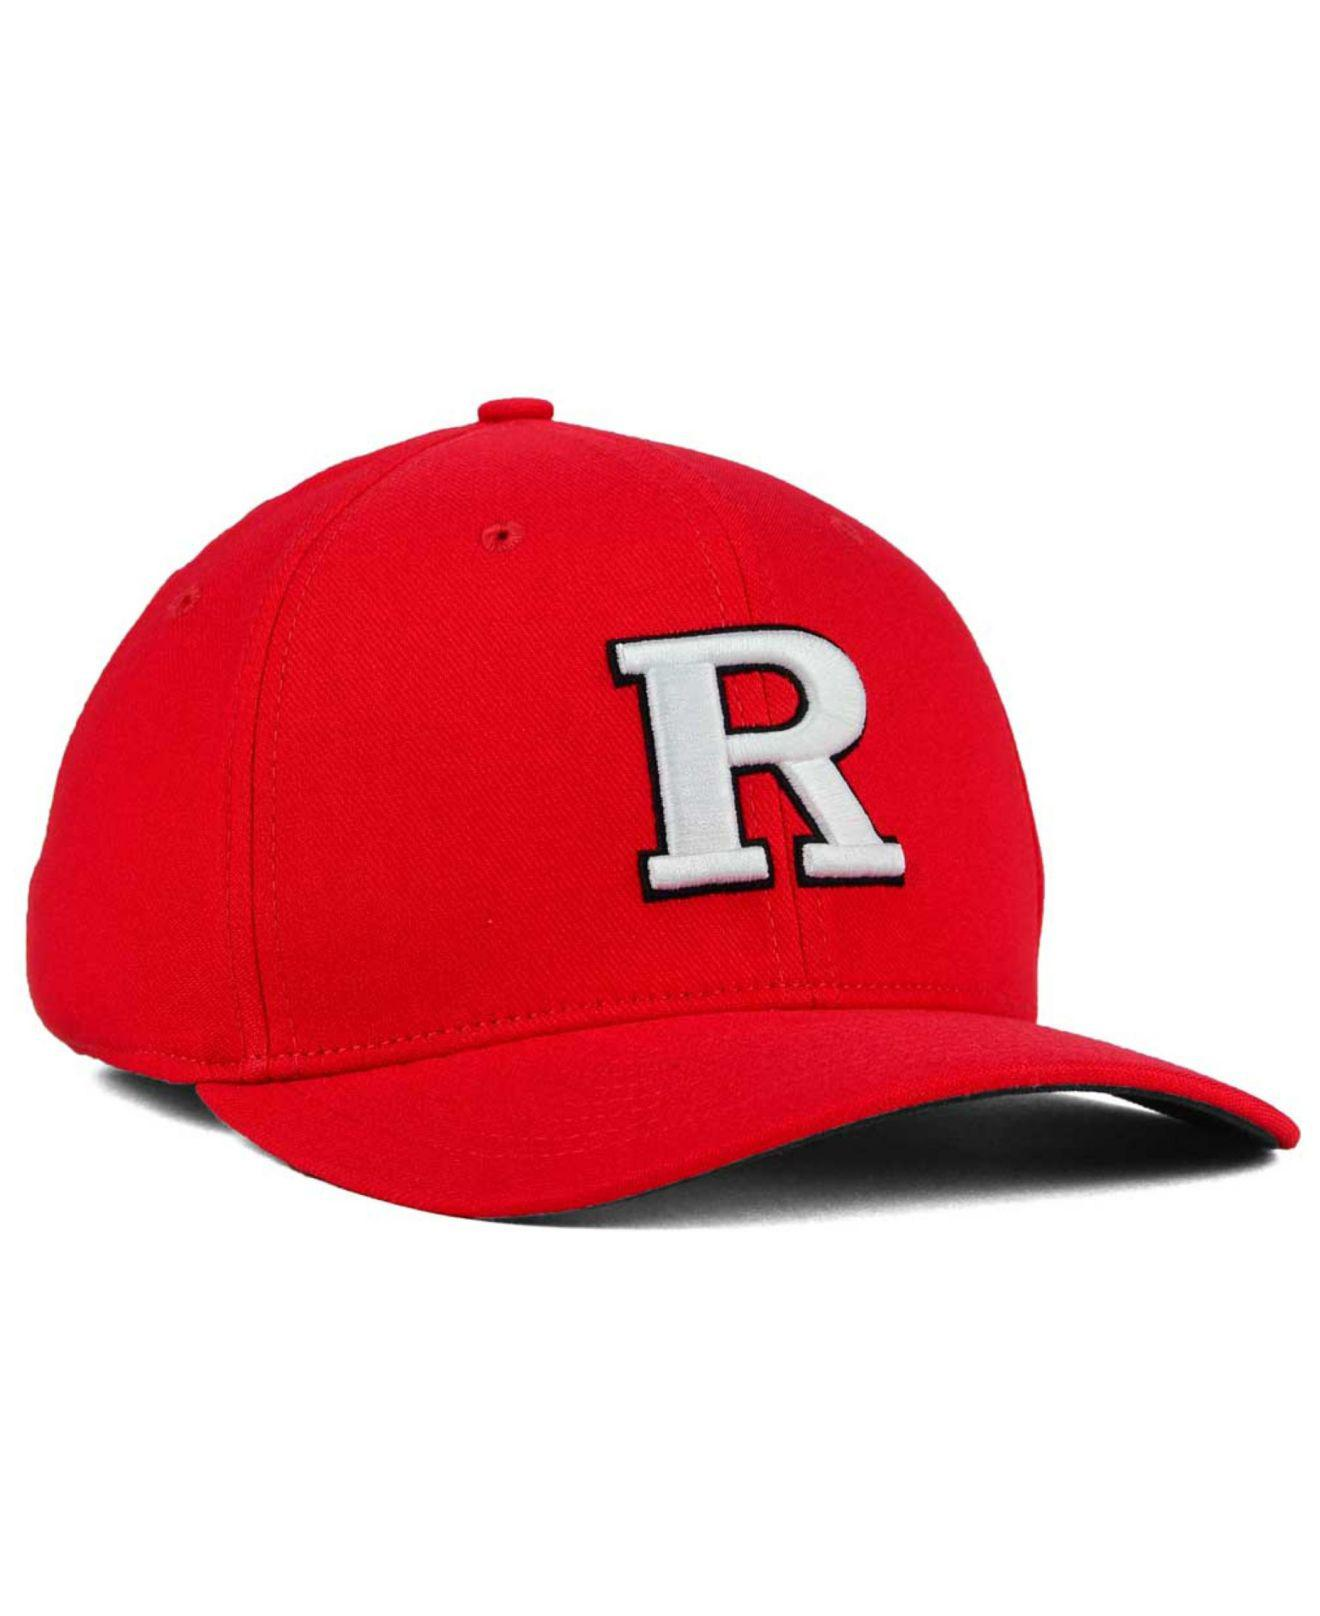 f3fc5ed88f143 sale lyst nike rutgers scarlet knights classic swoosh cap in red for men  1b1fa 05d3b